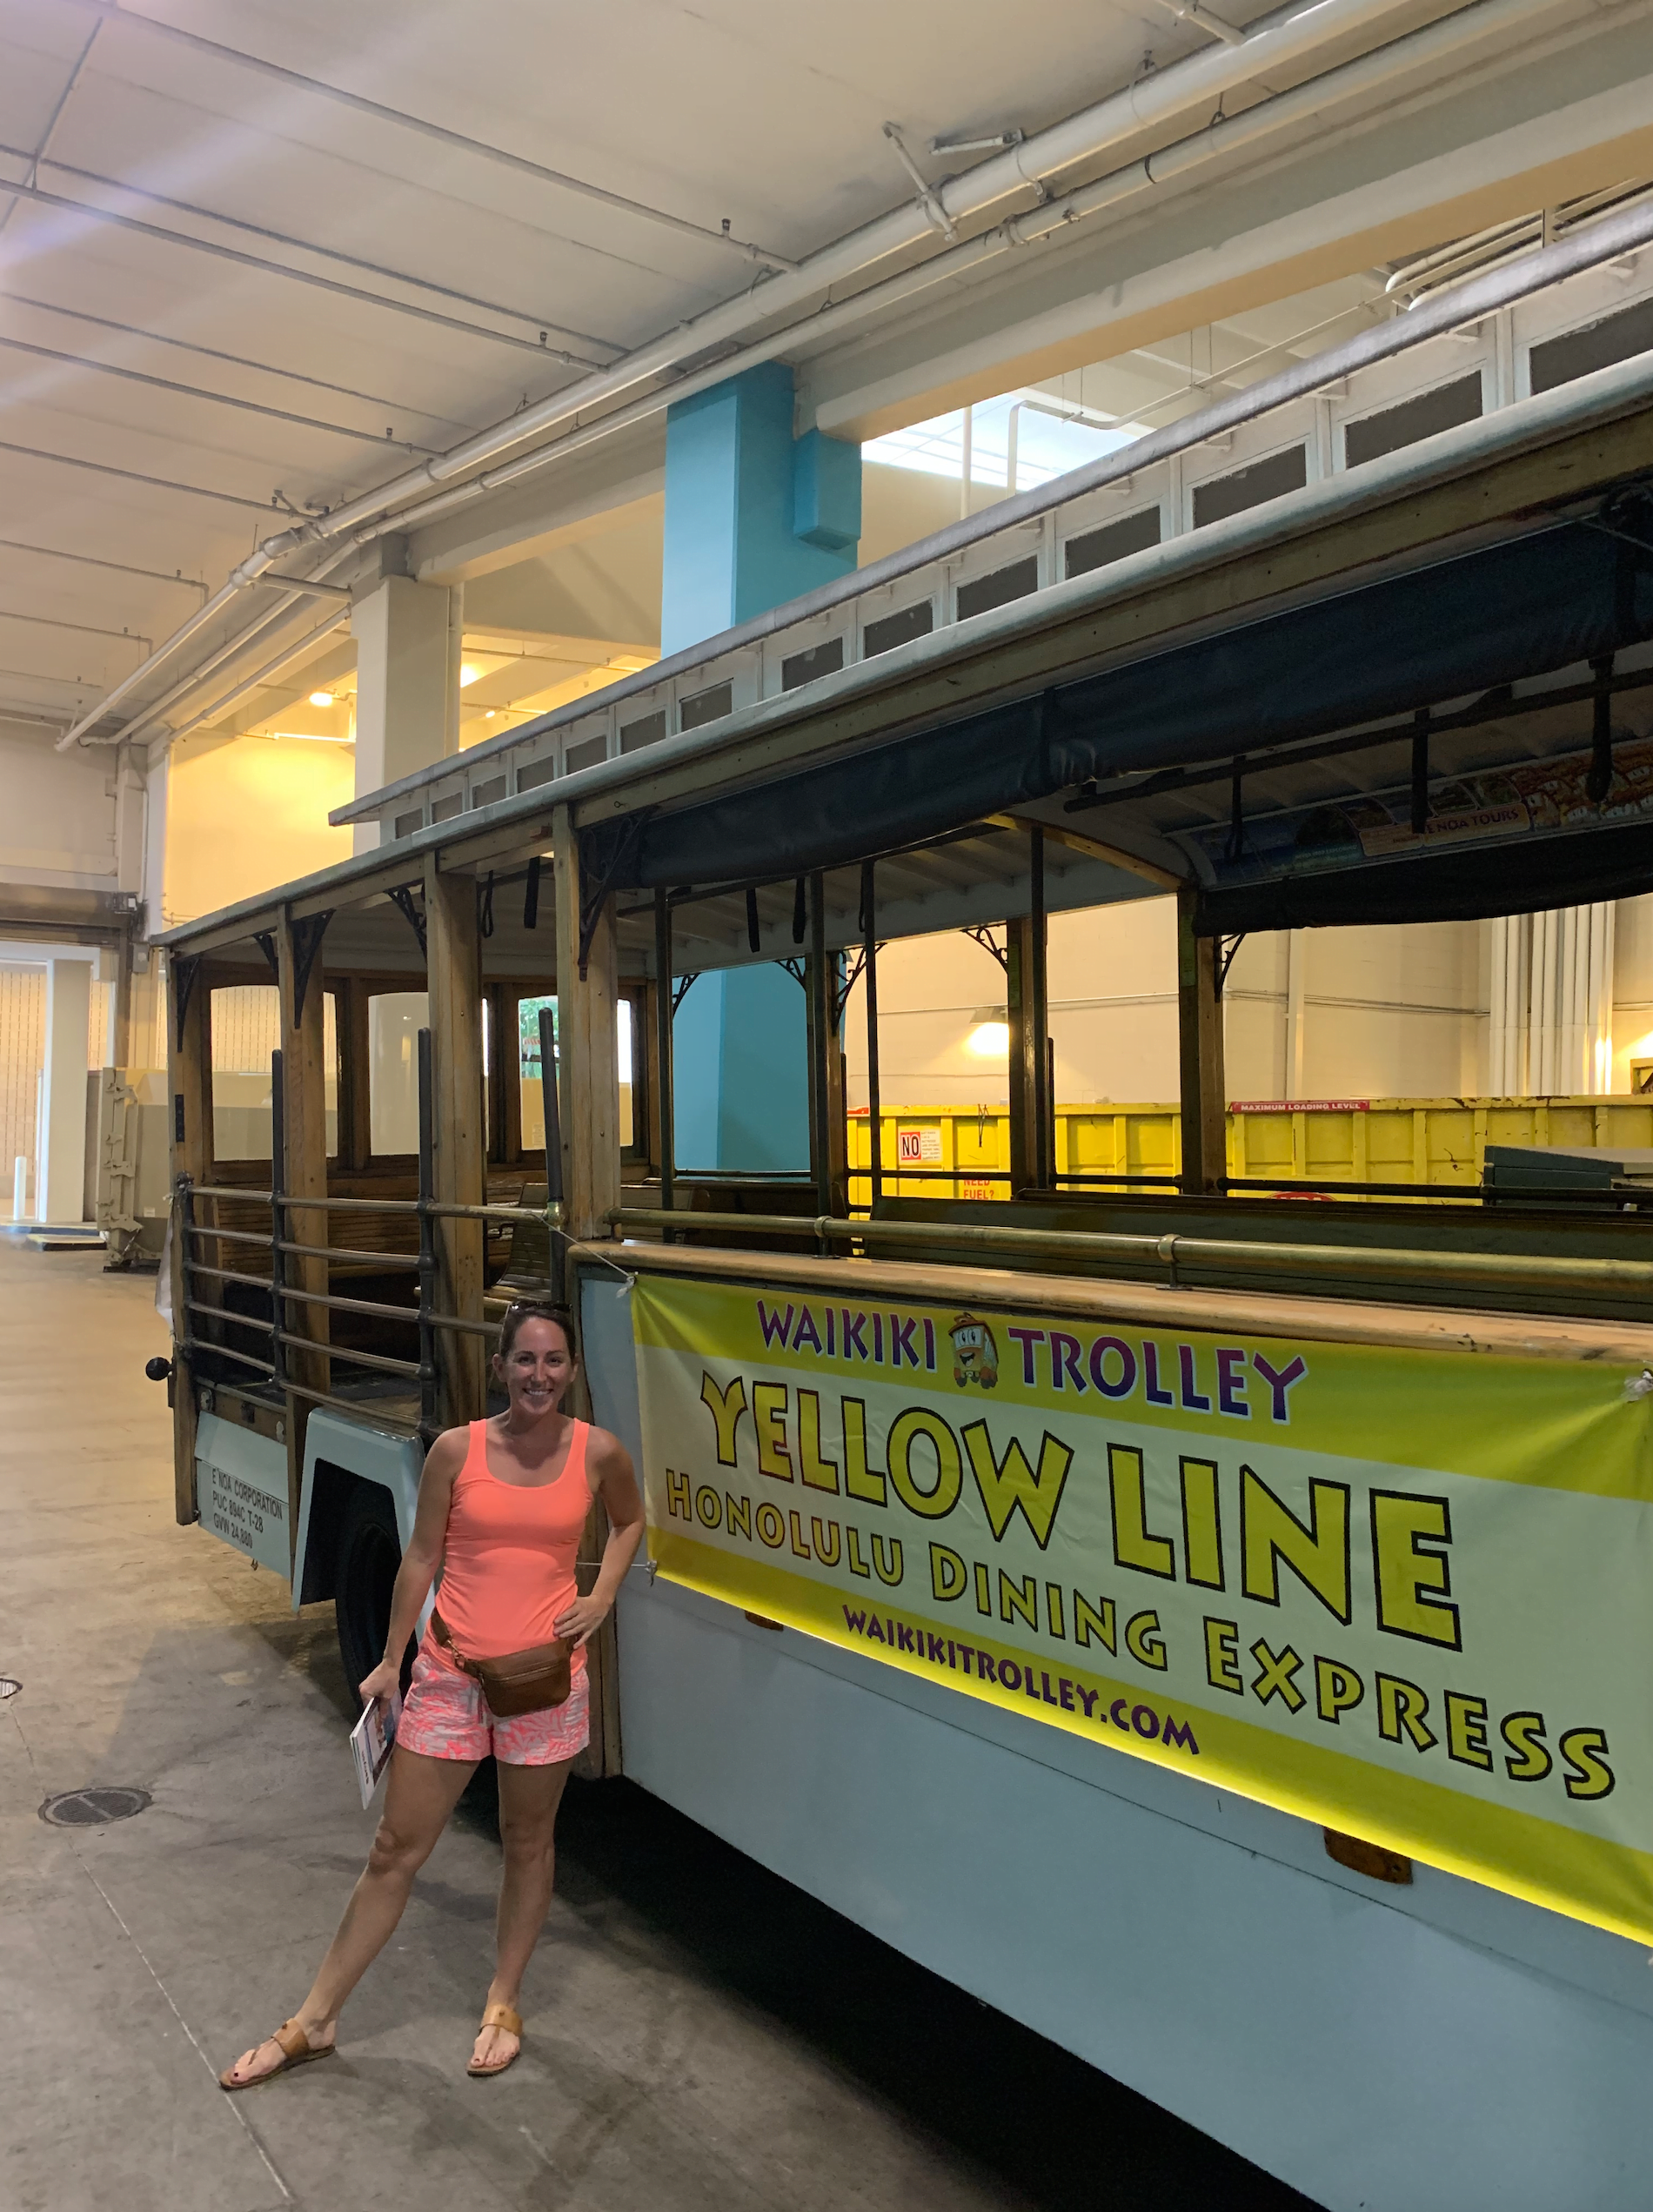 Waikiki Trolley Yellow Line